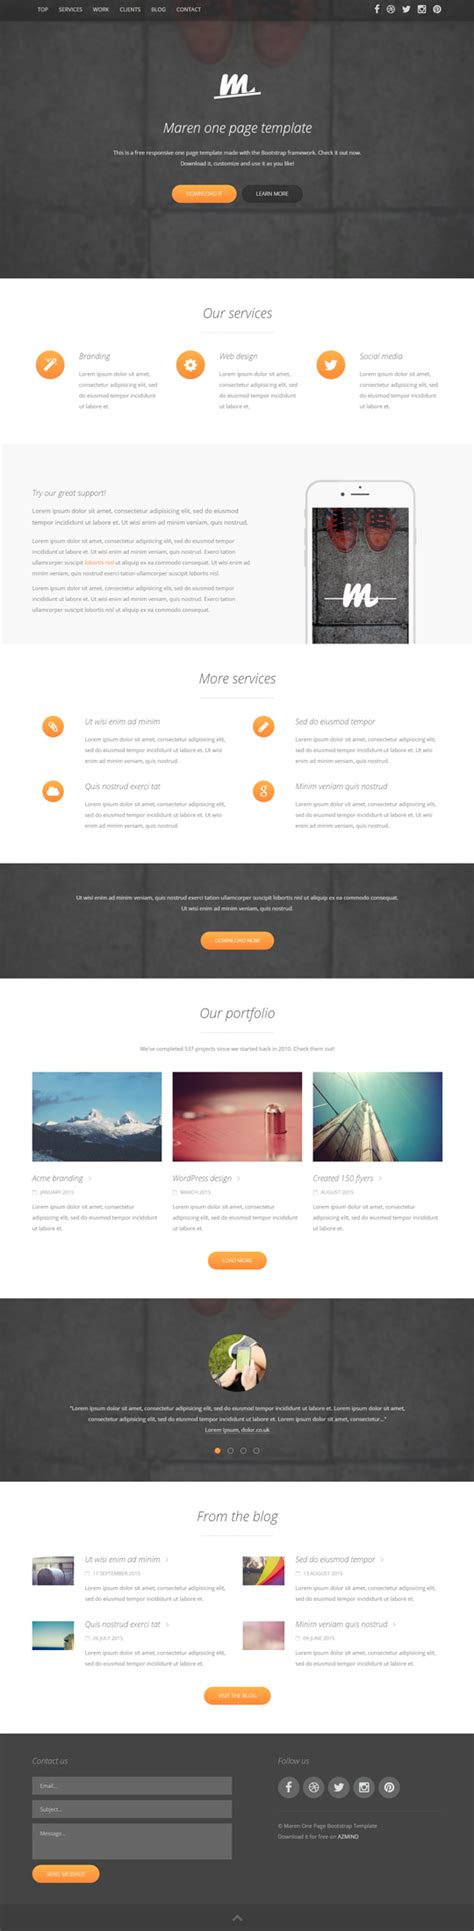 bootstrap single page template one pager template onegenius one page flat portfolio psd template one page start